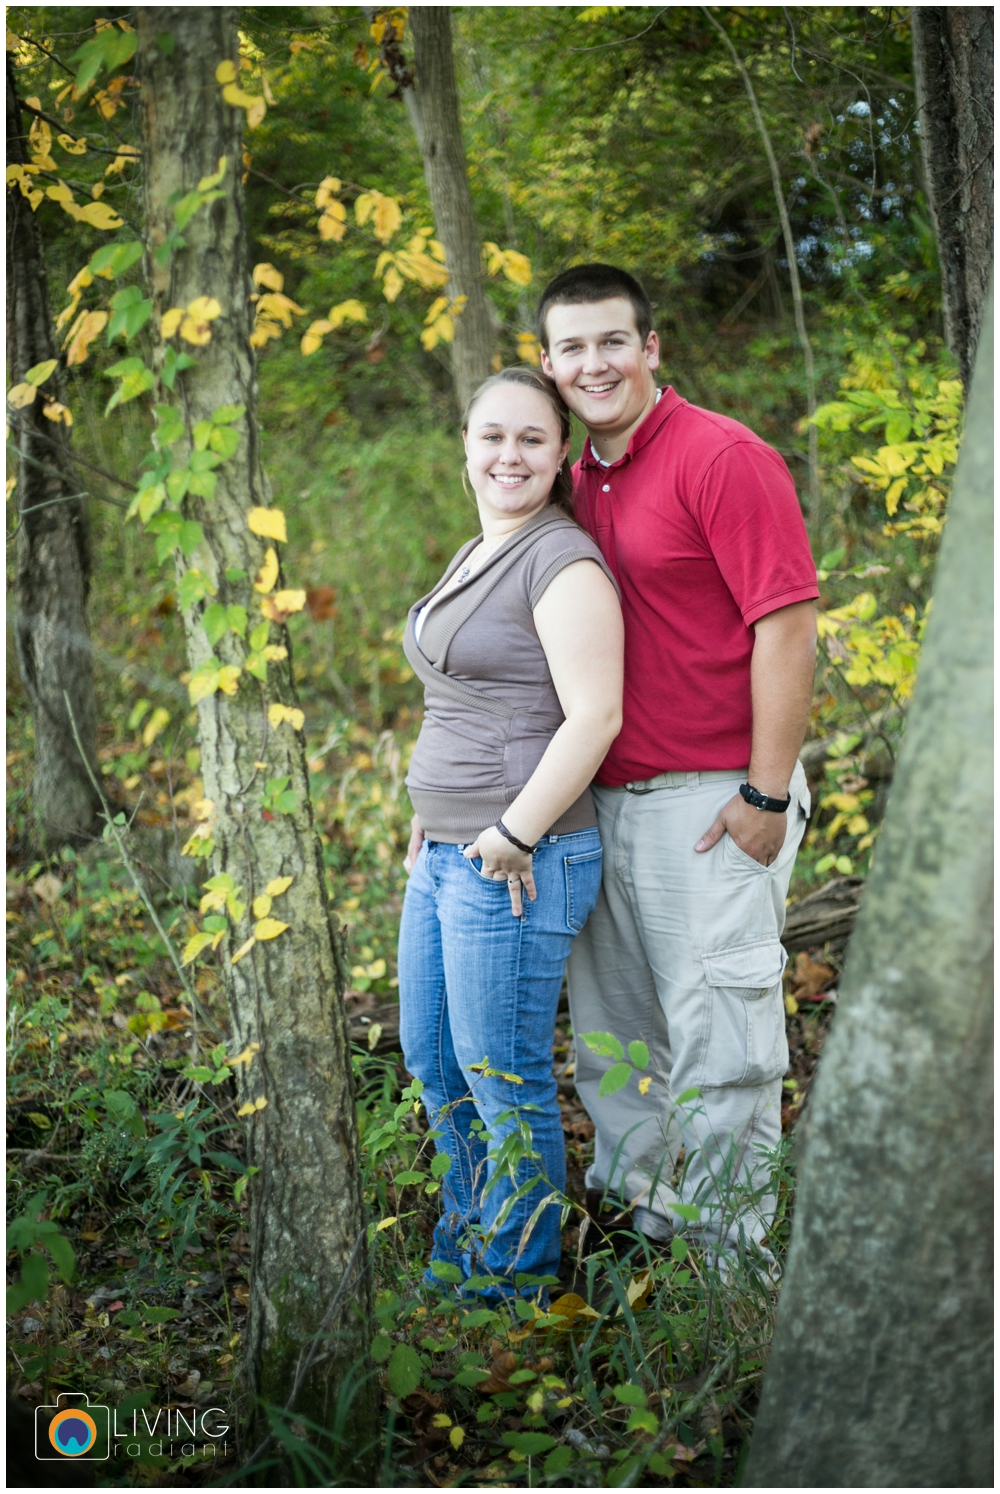 holley-ray-engaged-outdoor-engagement-session-woods-water-state-park-living-radiant-photography_0007.jpg